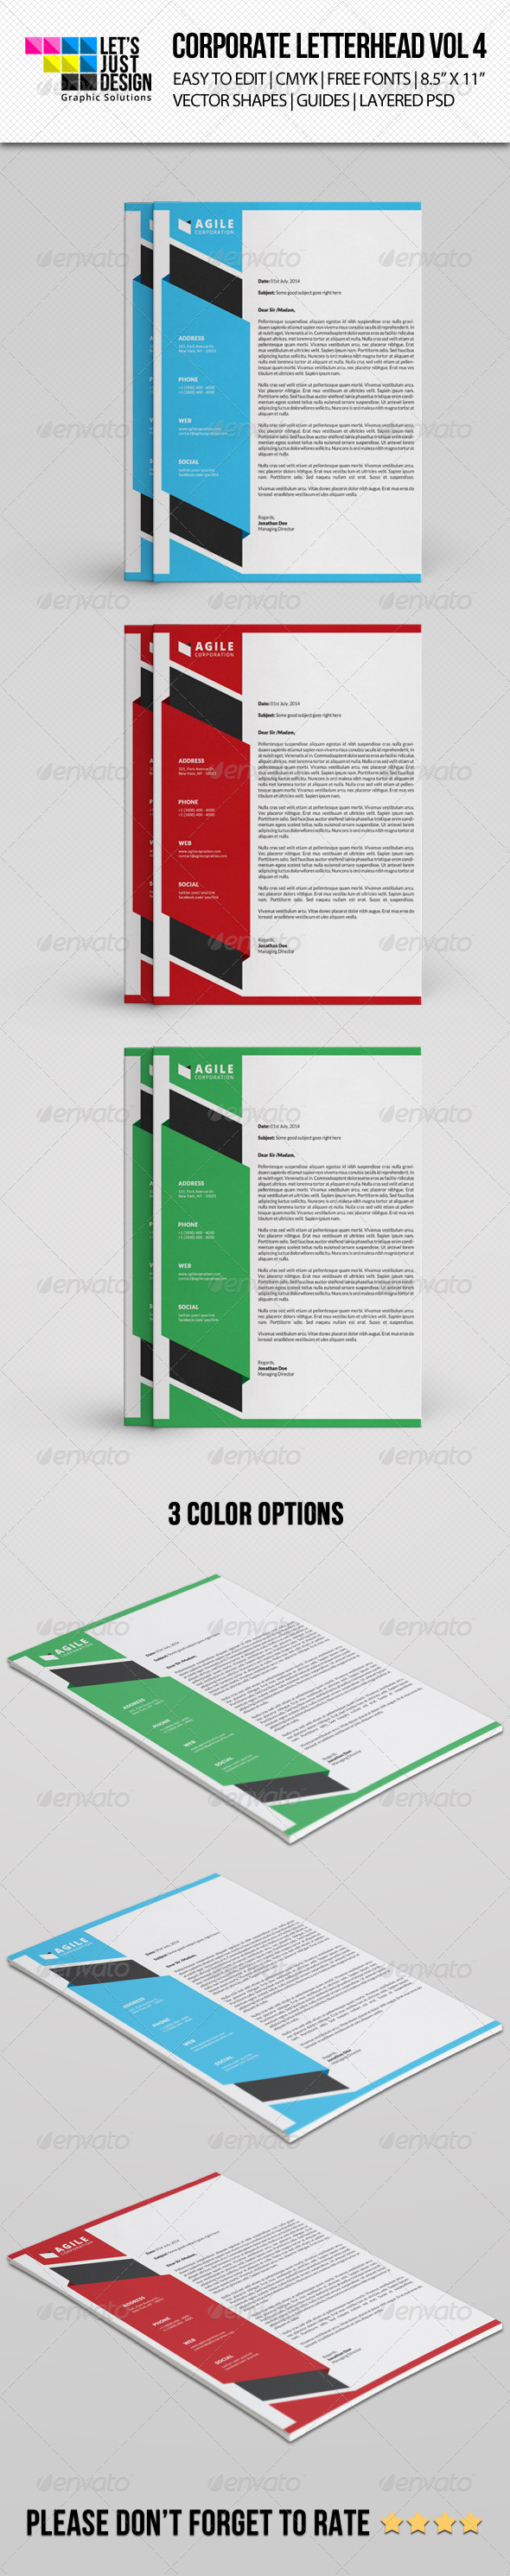 GraphicRiver Corporate Letterhead Vol 4 8318365